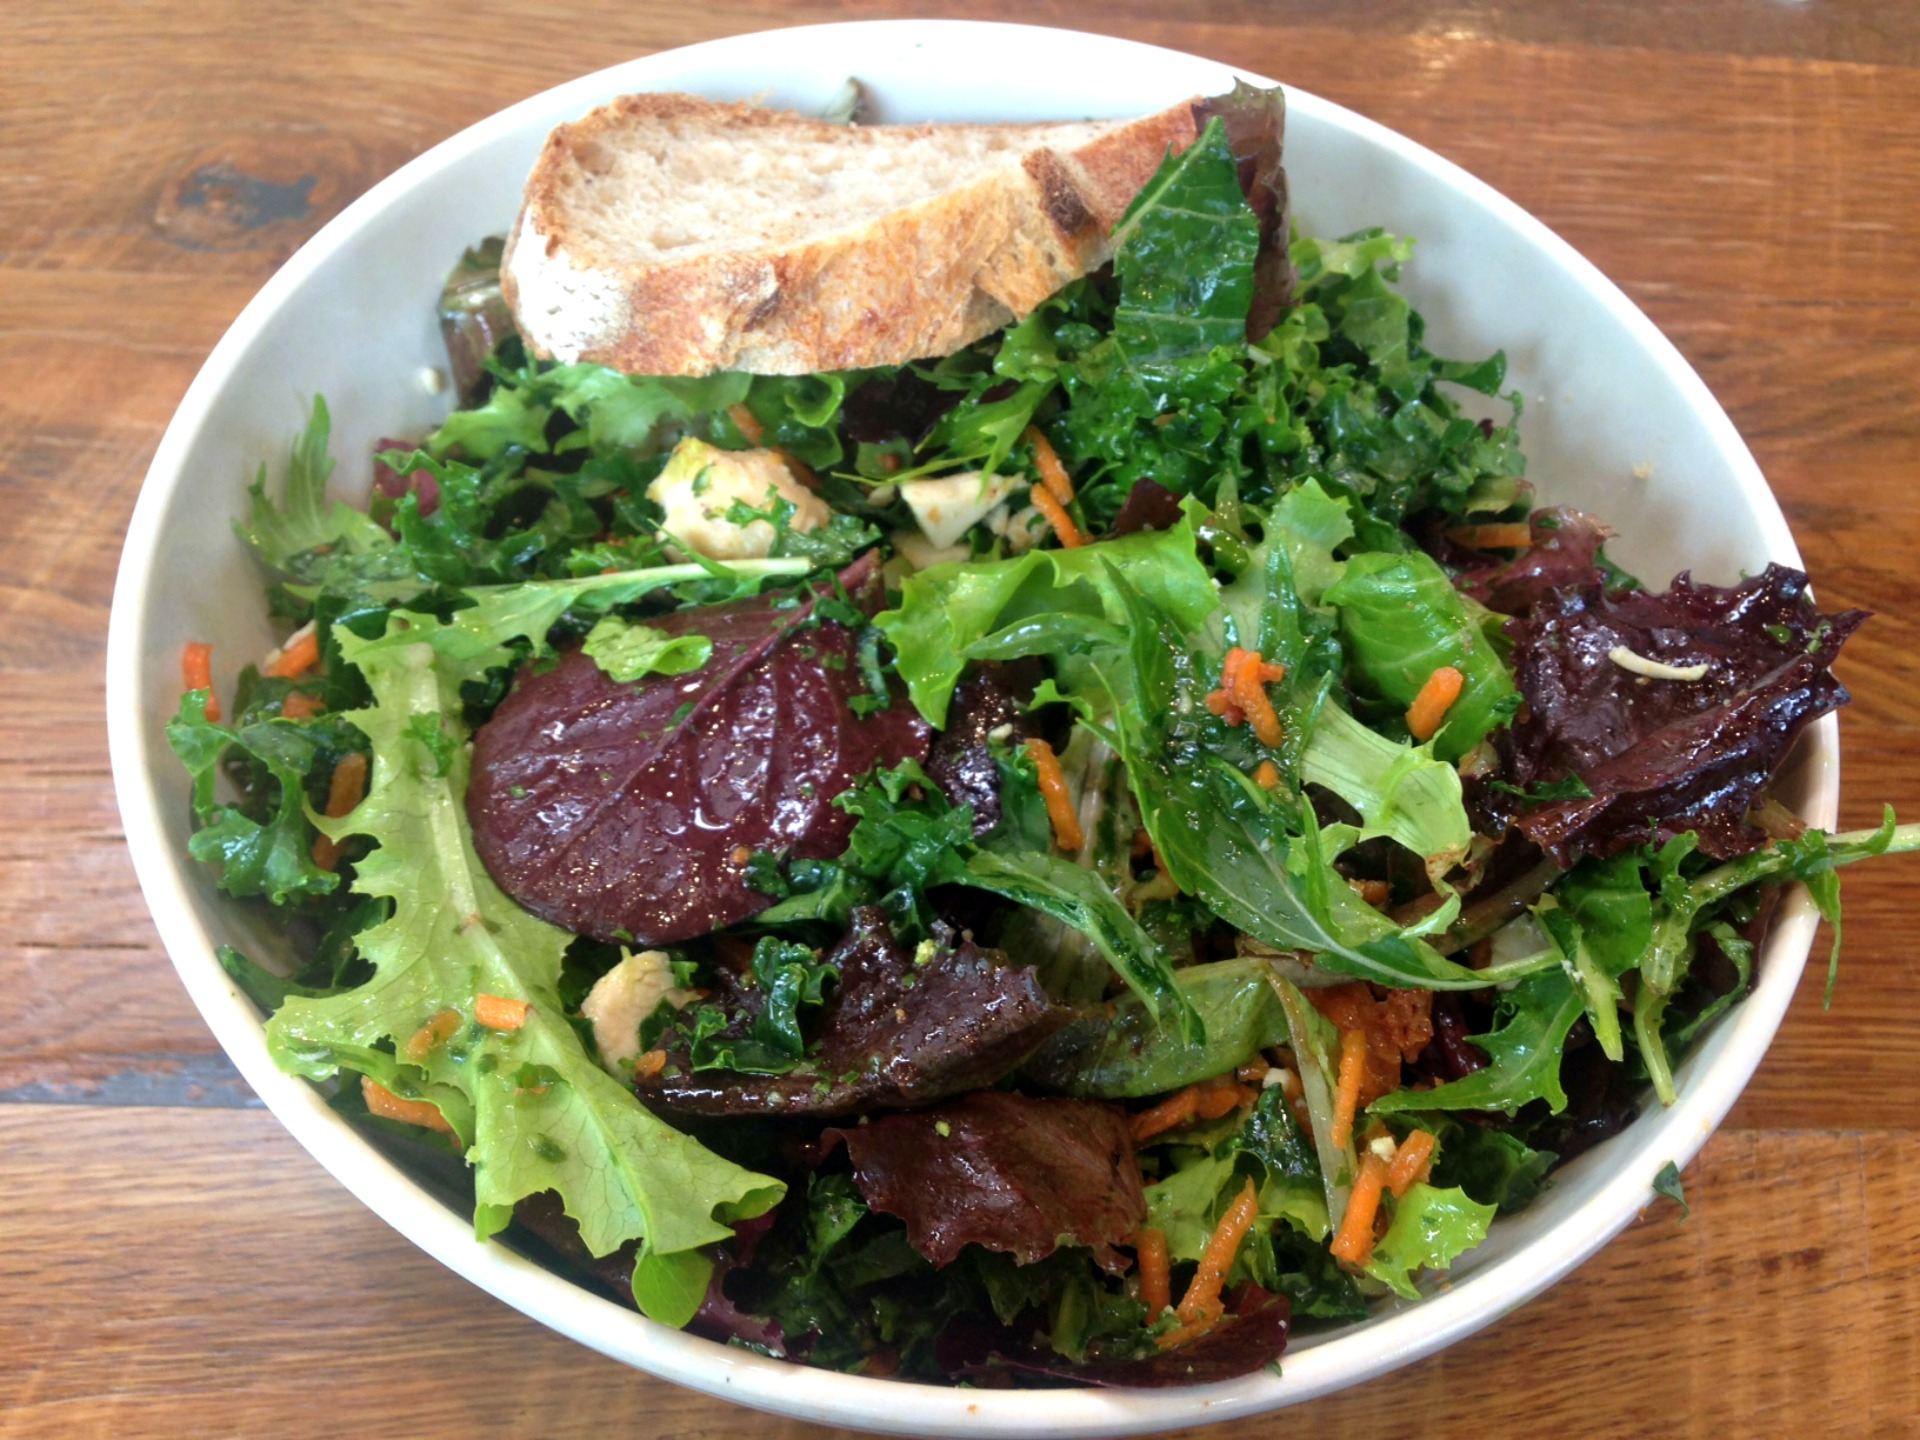 A spring chicken salad from sweetgreen.